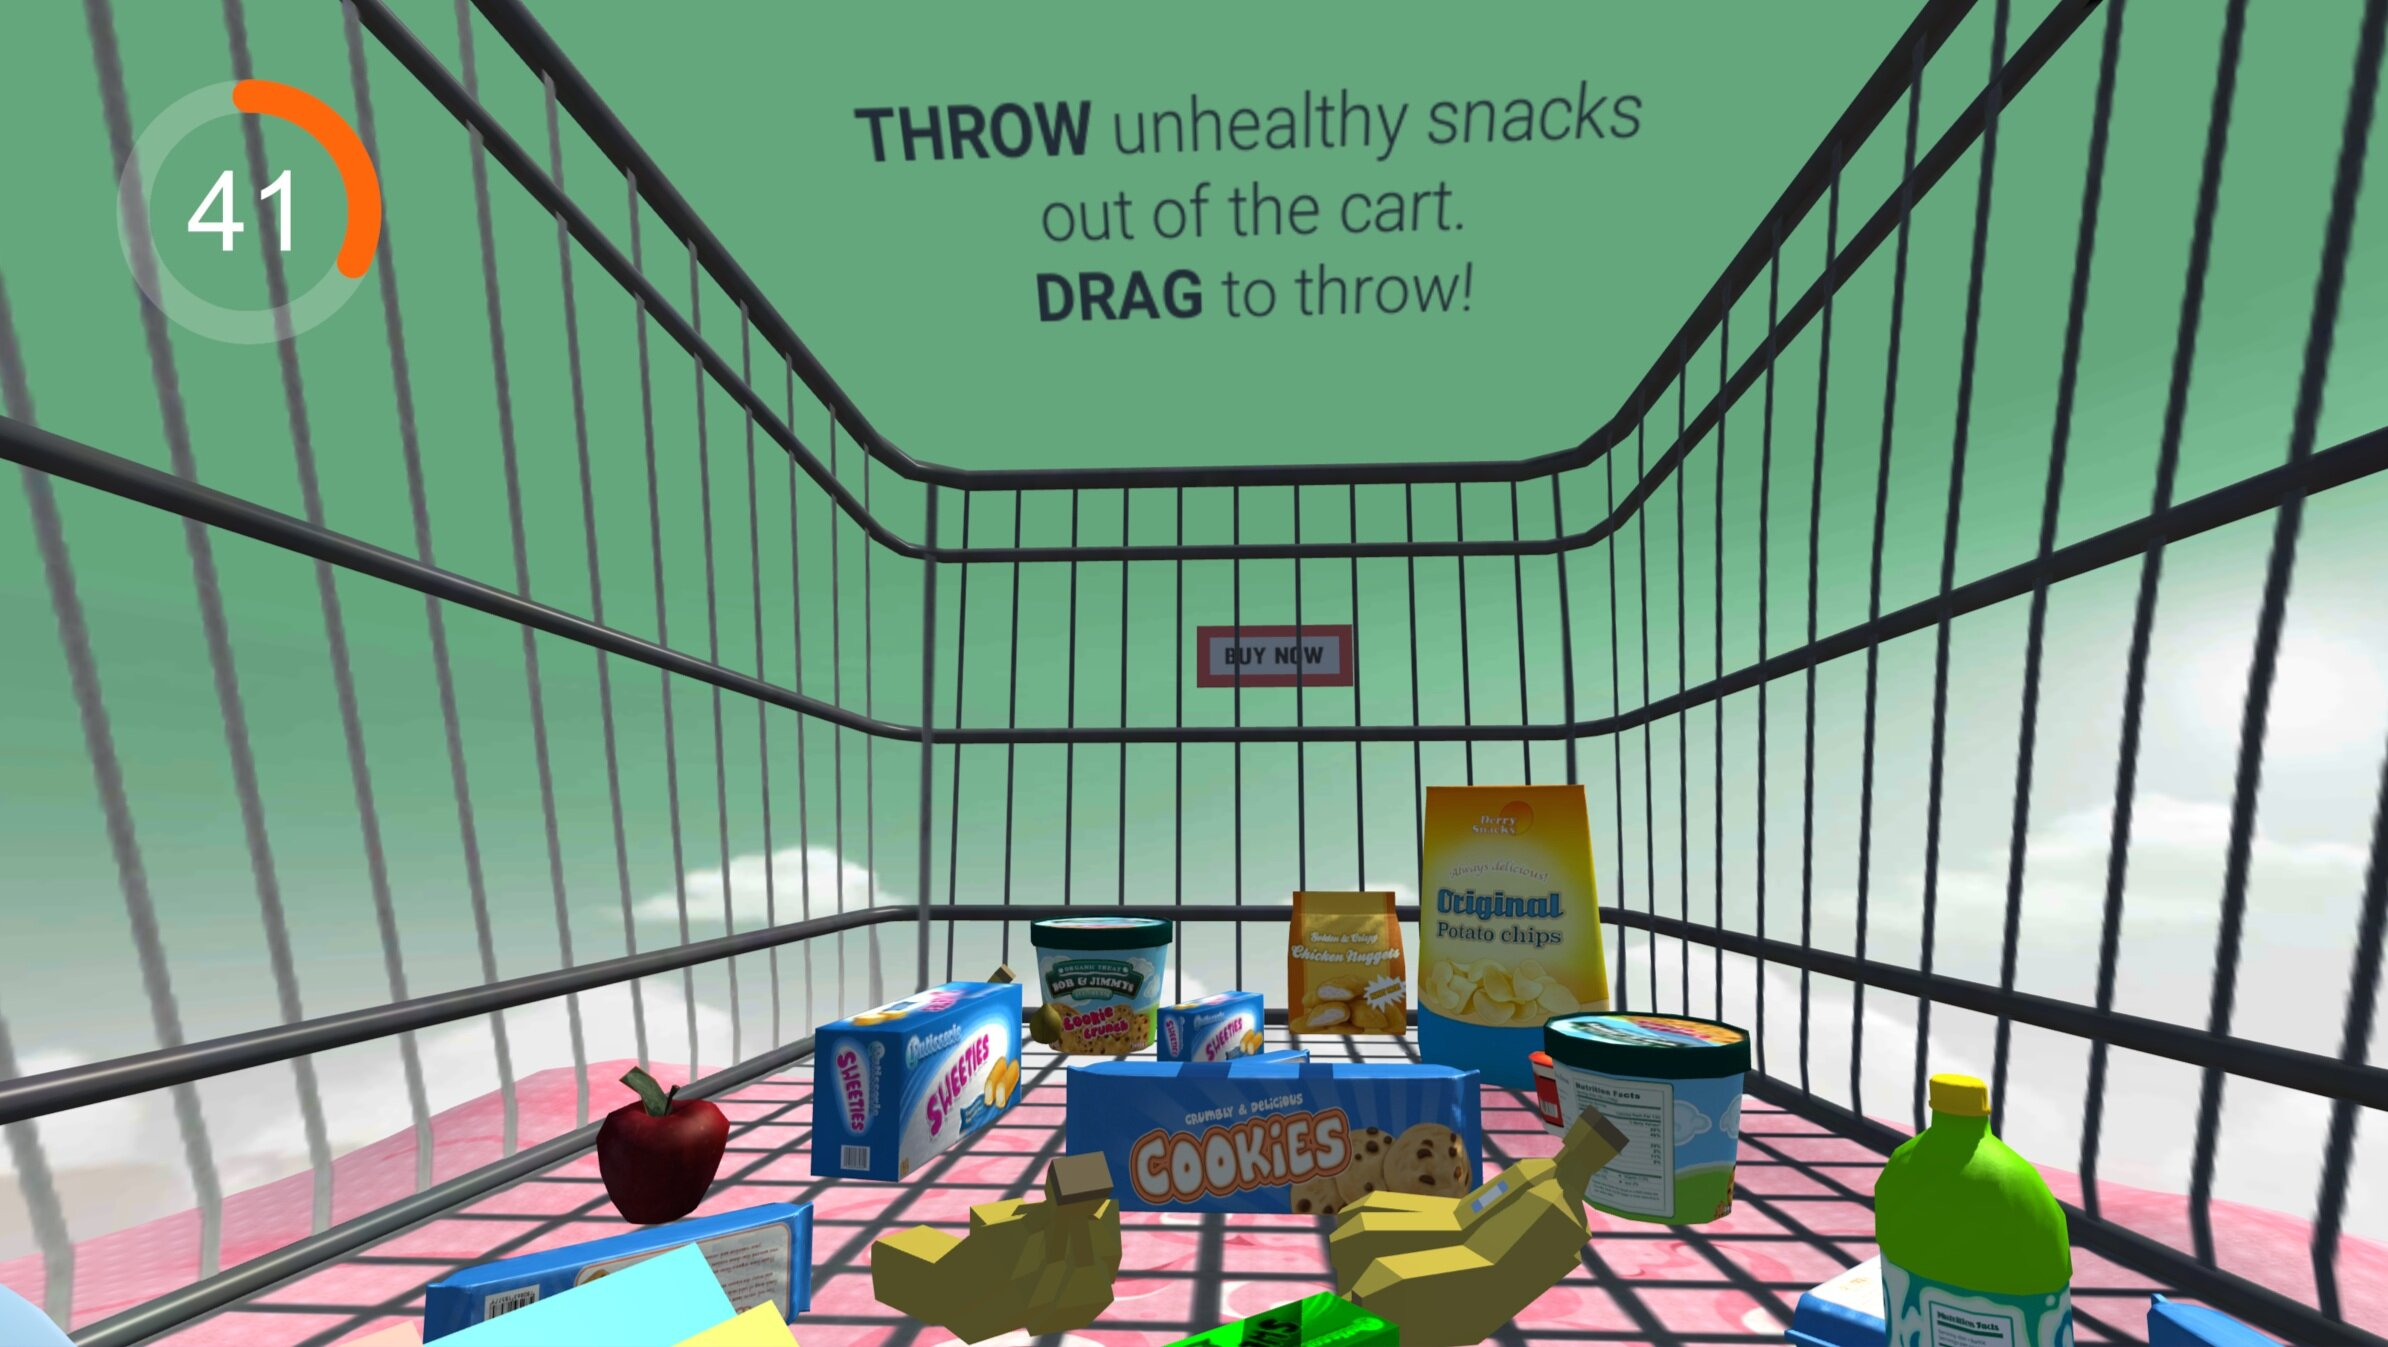 Second Prototype  | A drag and throw junk food out of the shopping cart experience. Built with Lenovo Mirage Solo.